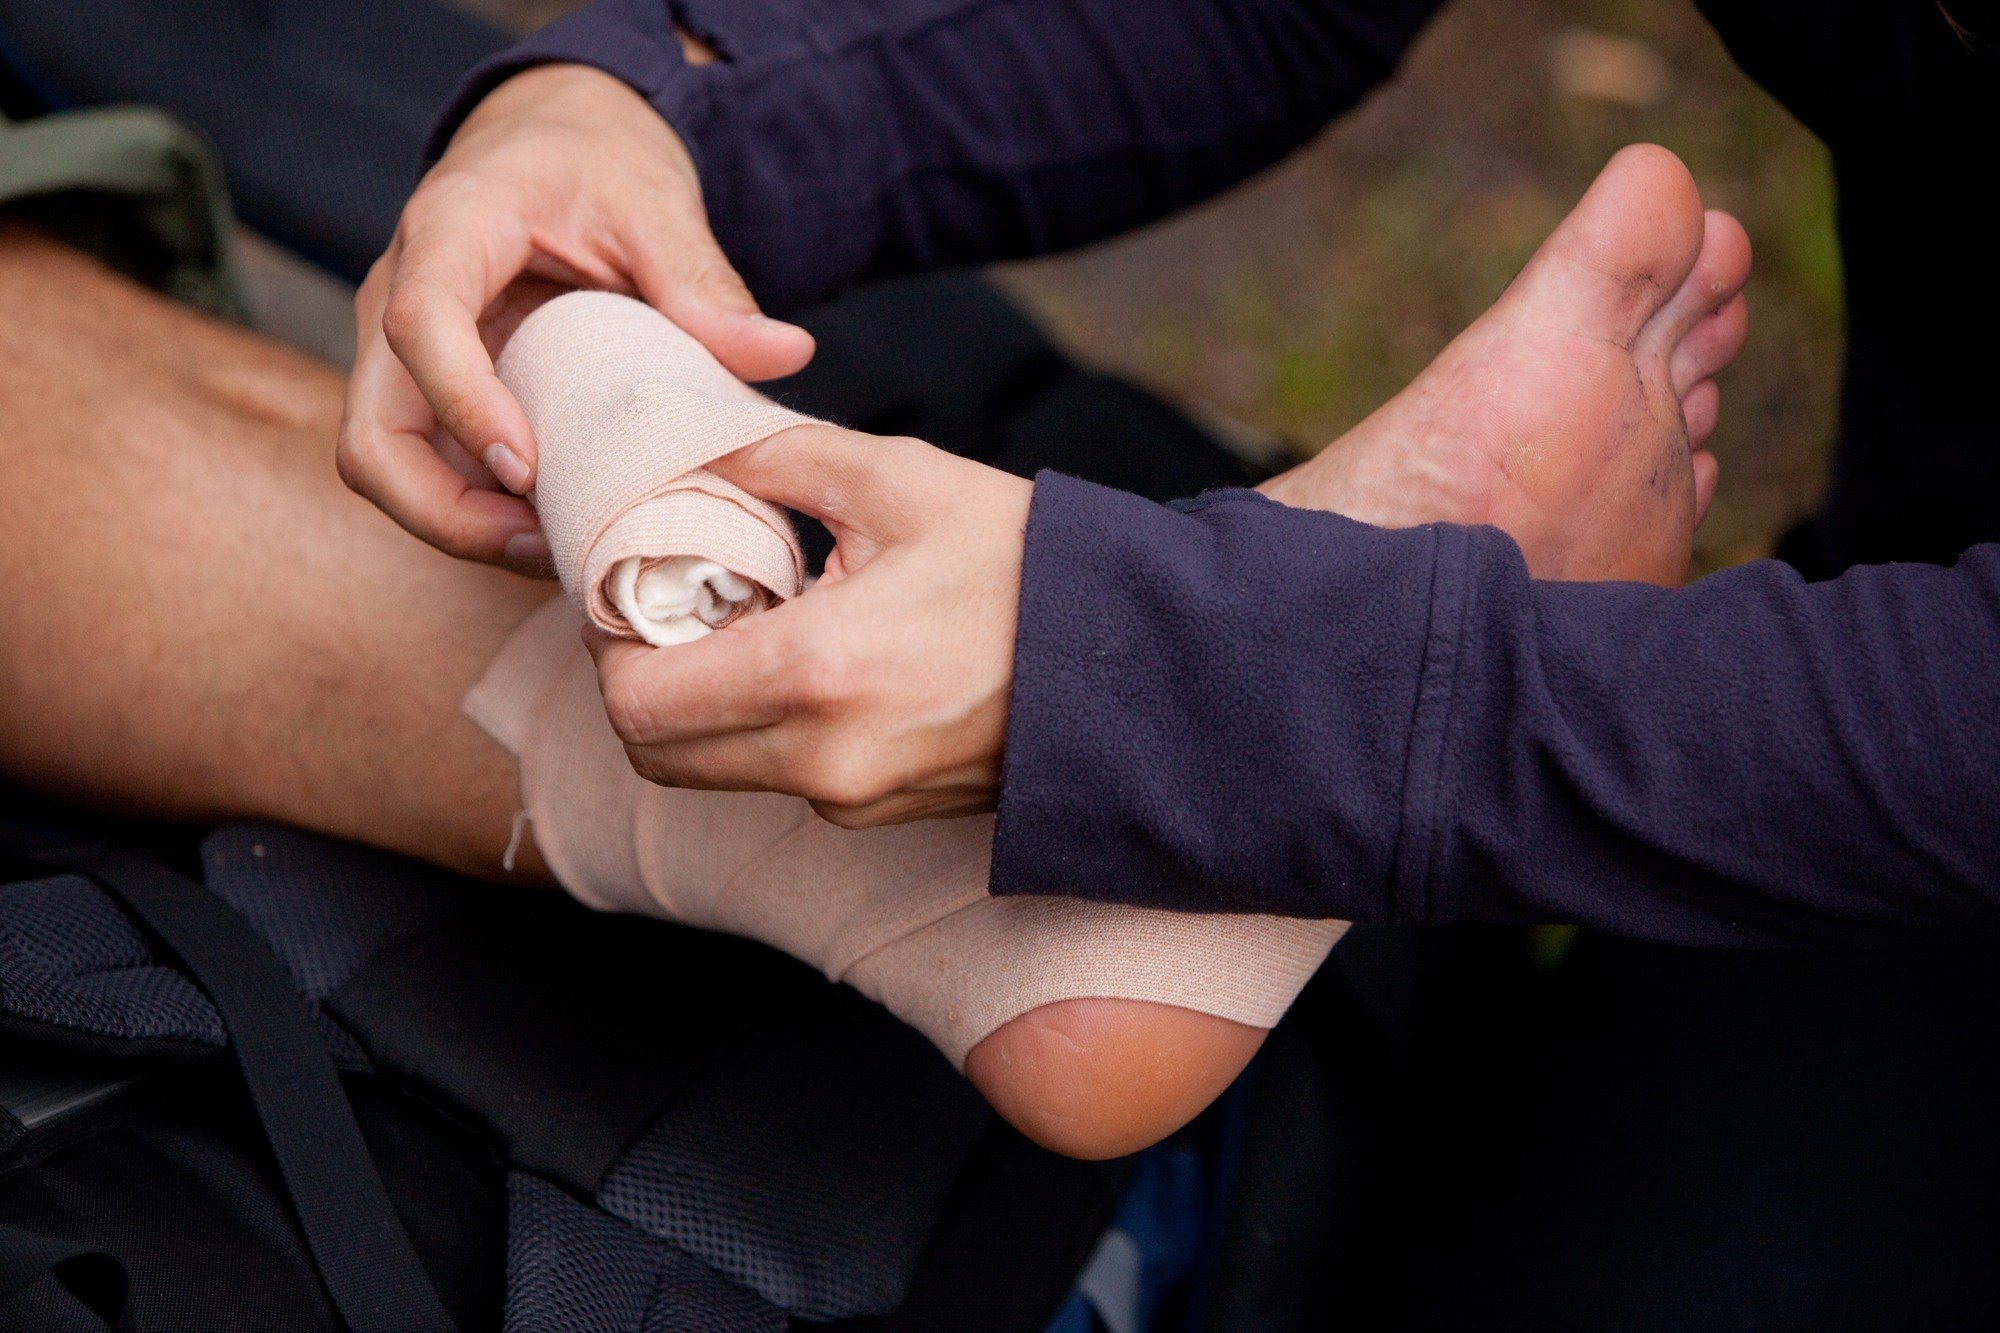 Don't forget to pack a first aid kit when camping